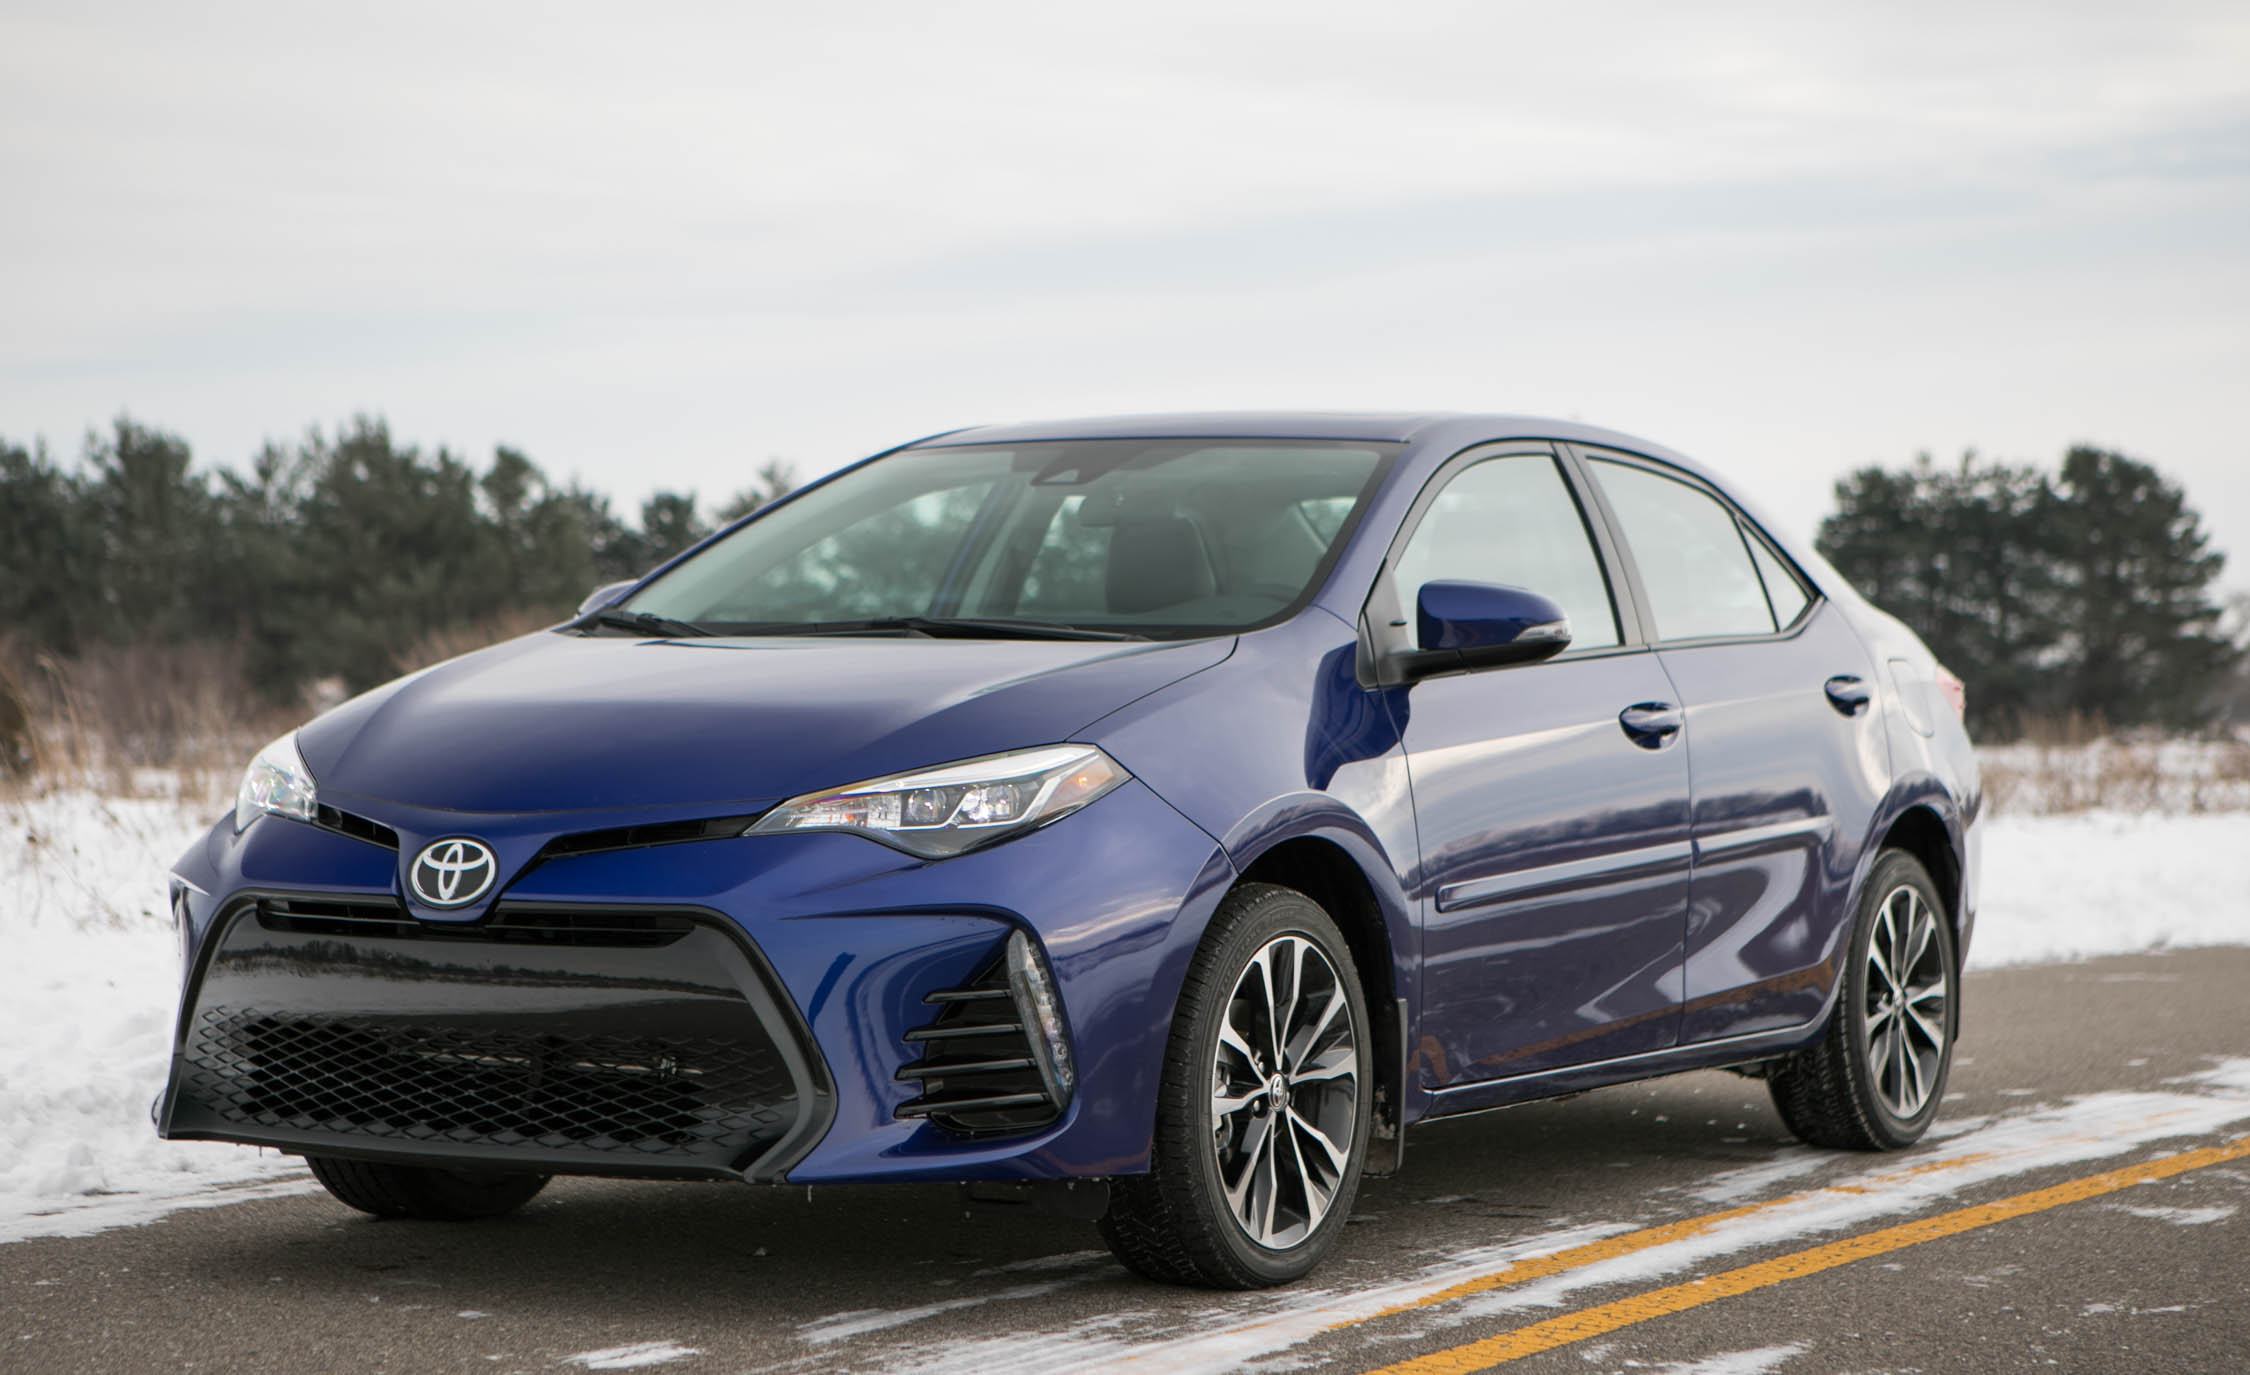 2017 Toyota Corolla XSE Exterior (Photo 31 of 75)